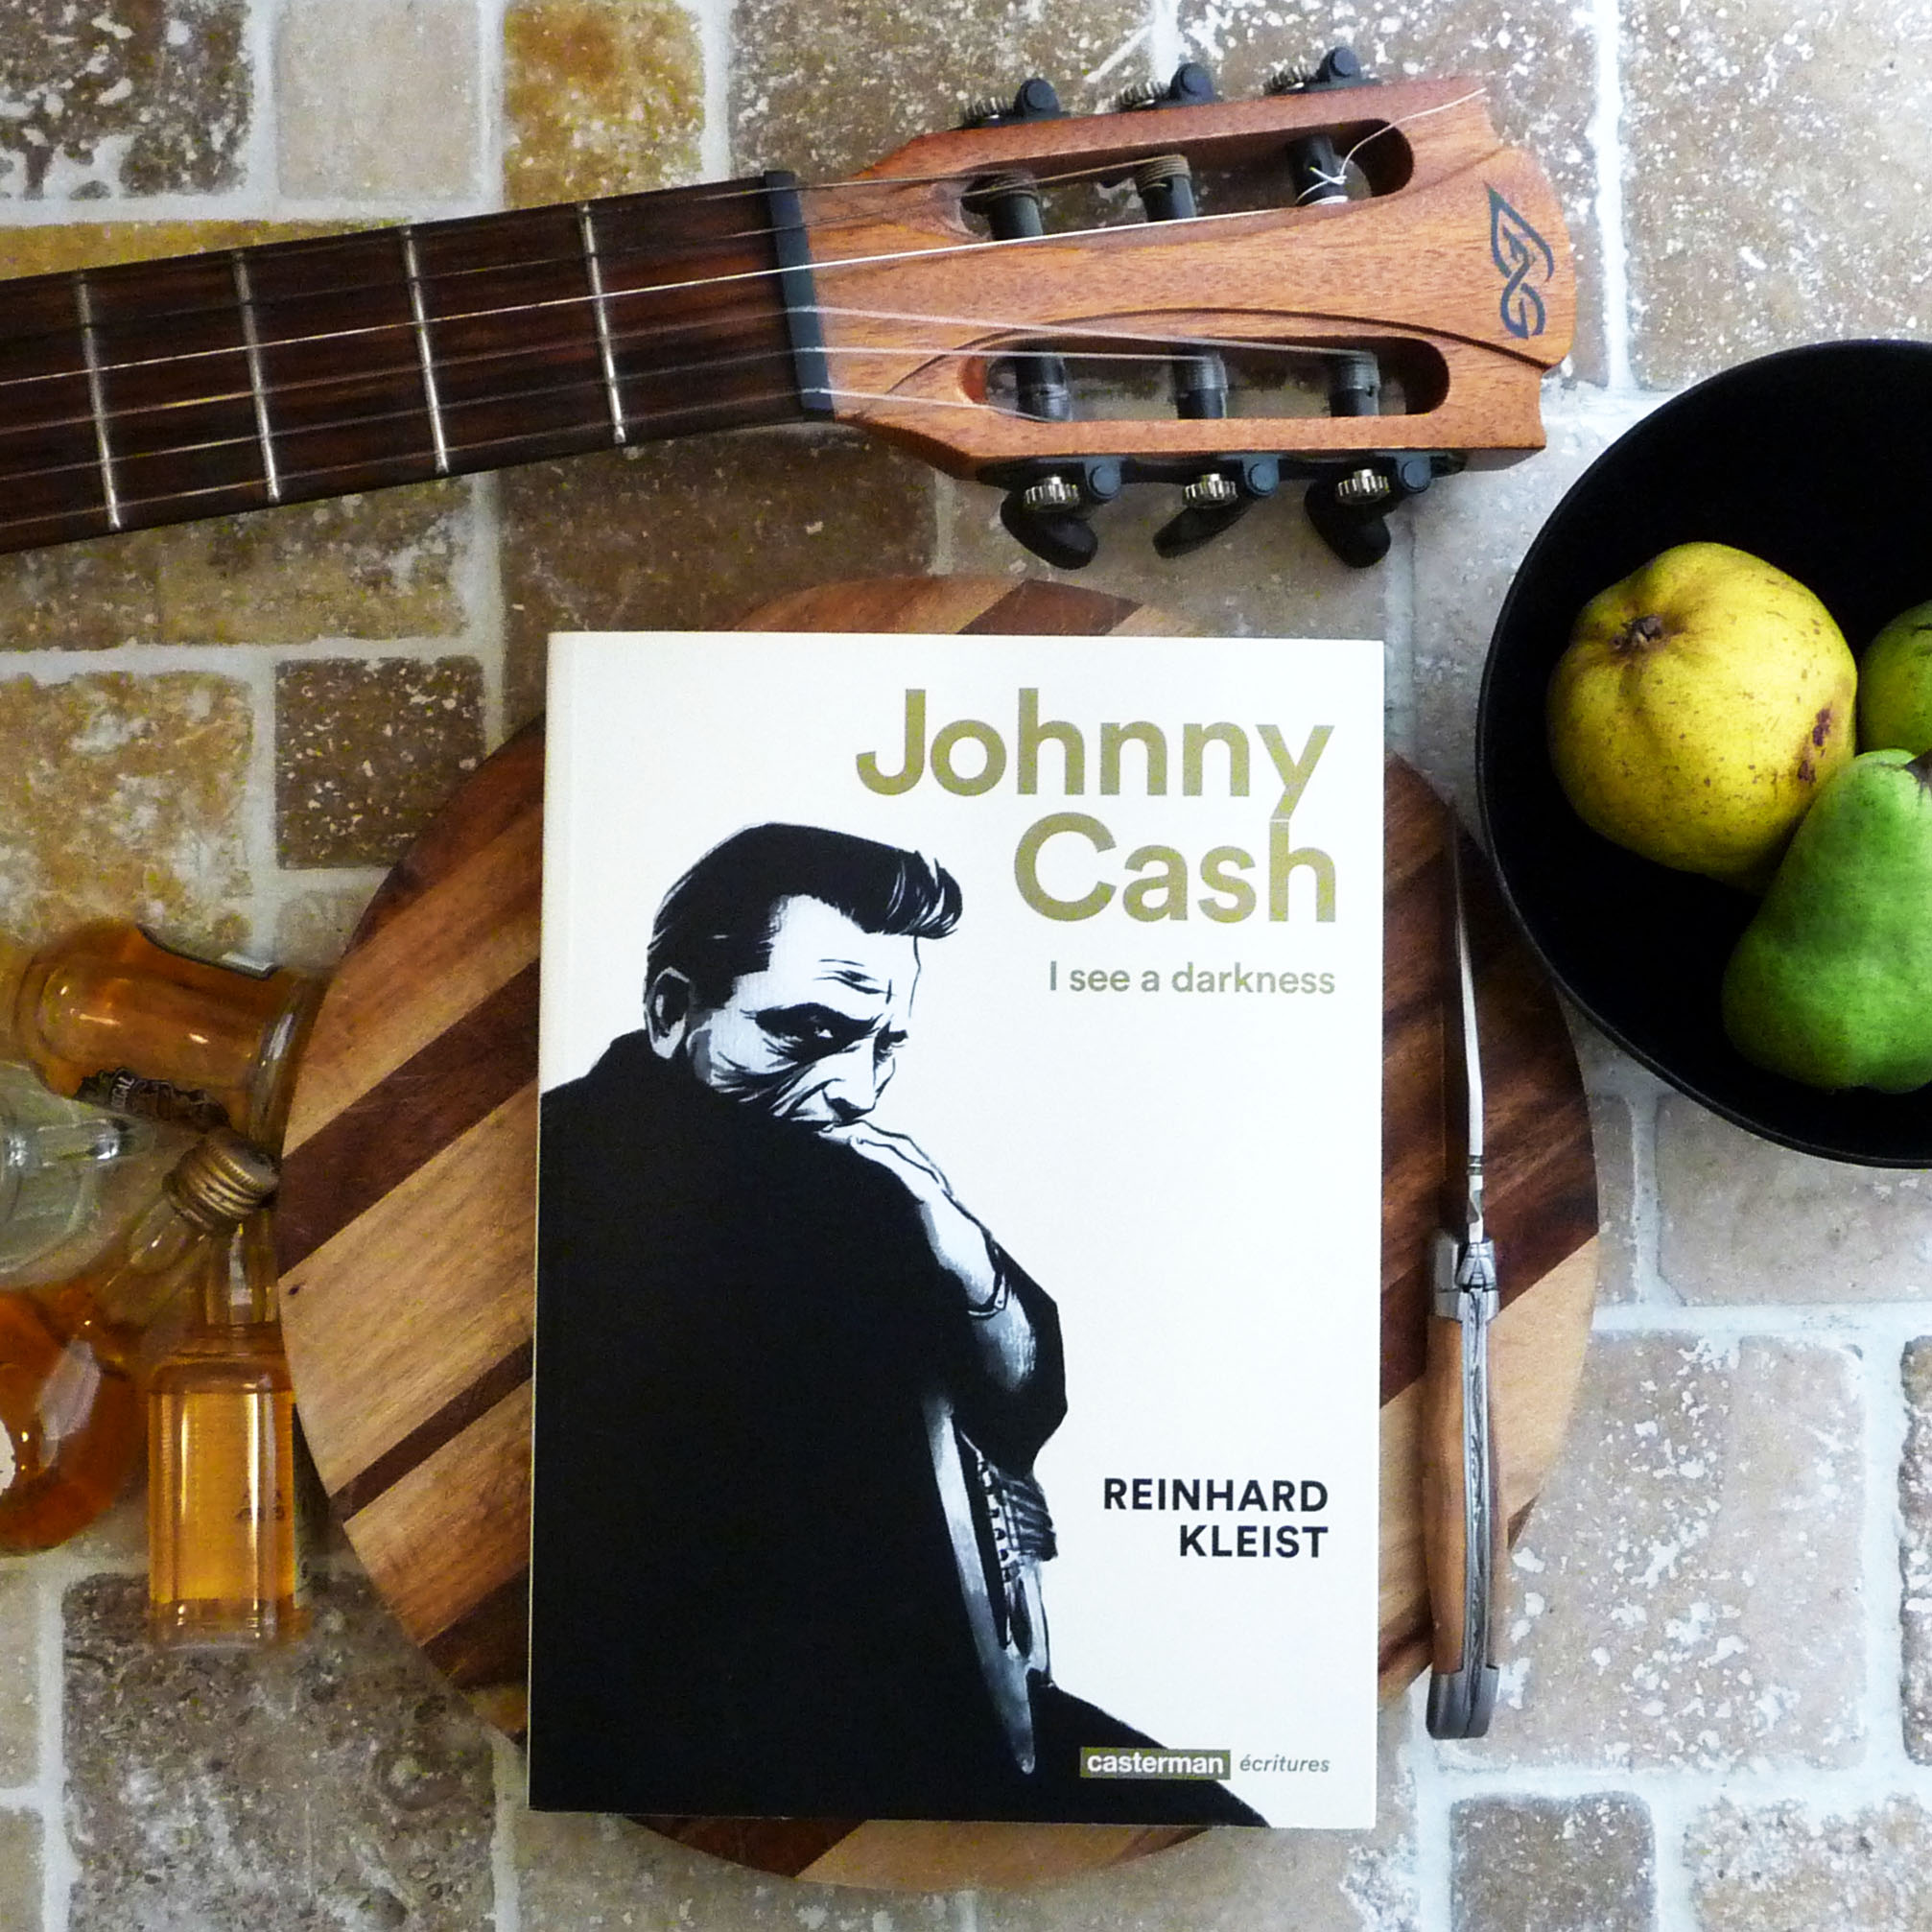 Johnny Cash, I see a darkness, Reinhard Kleist, Casterman